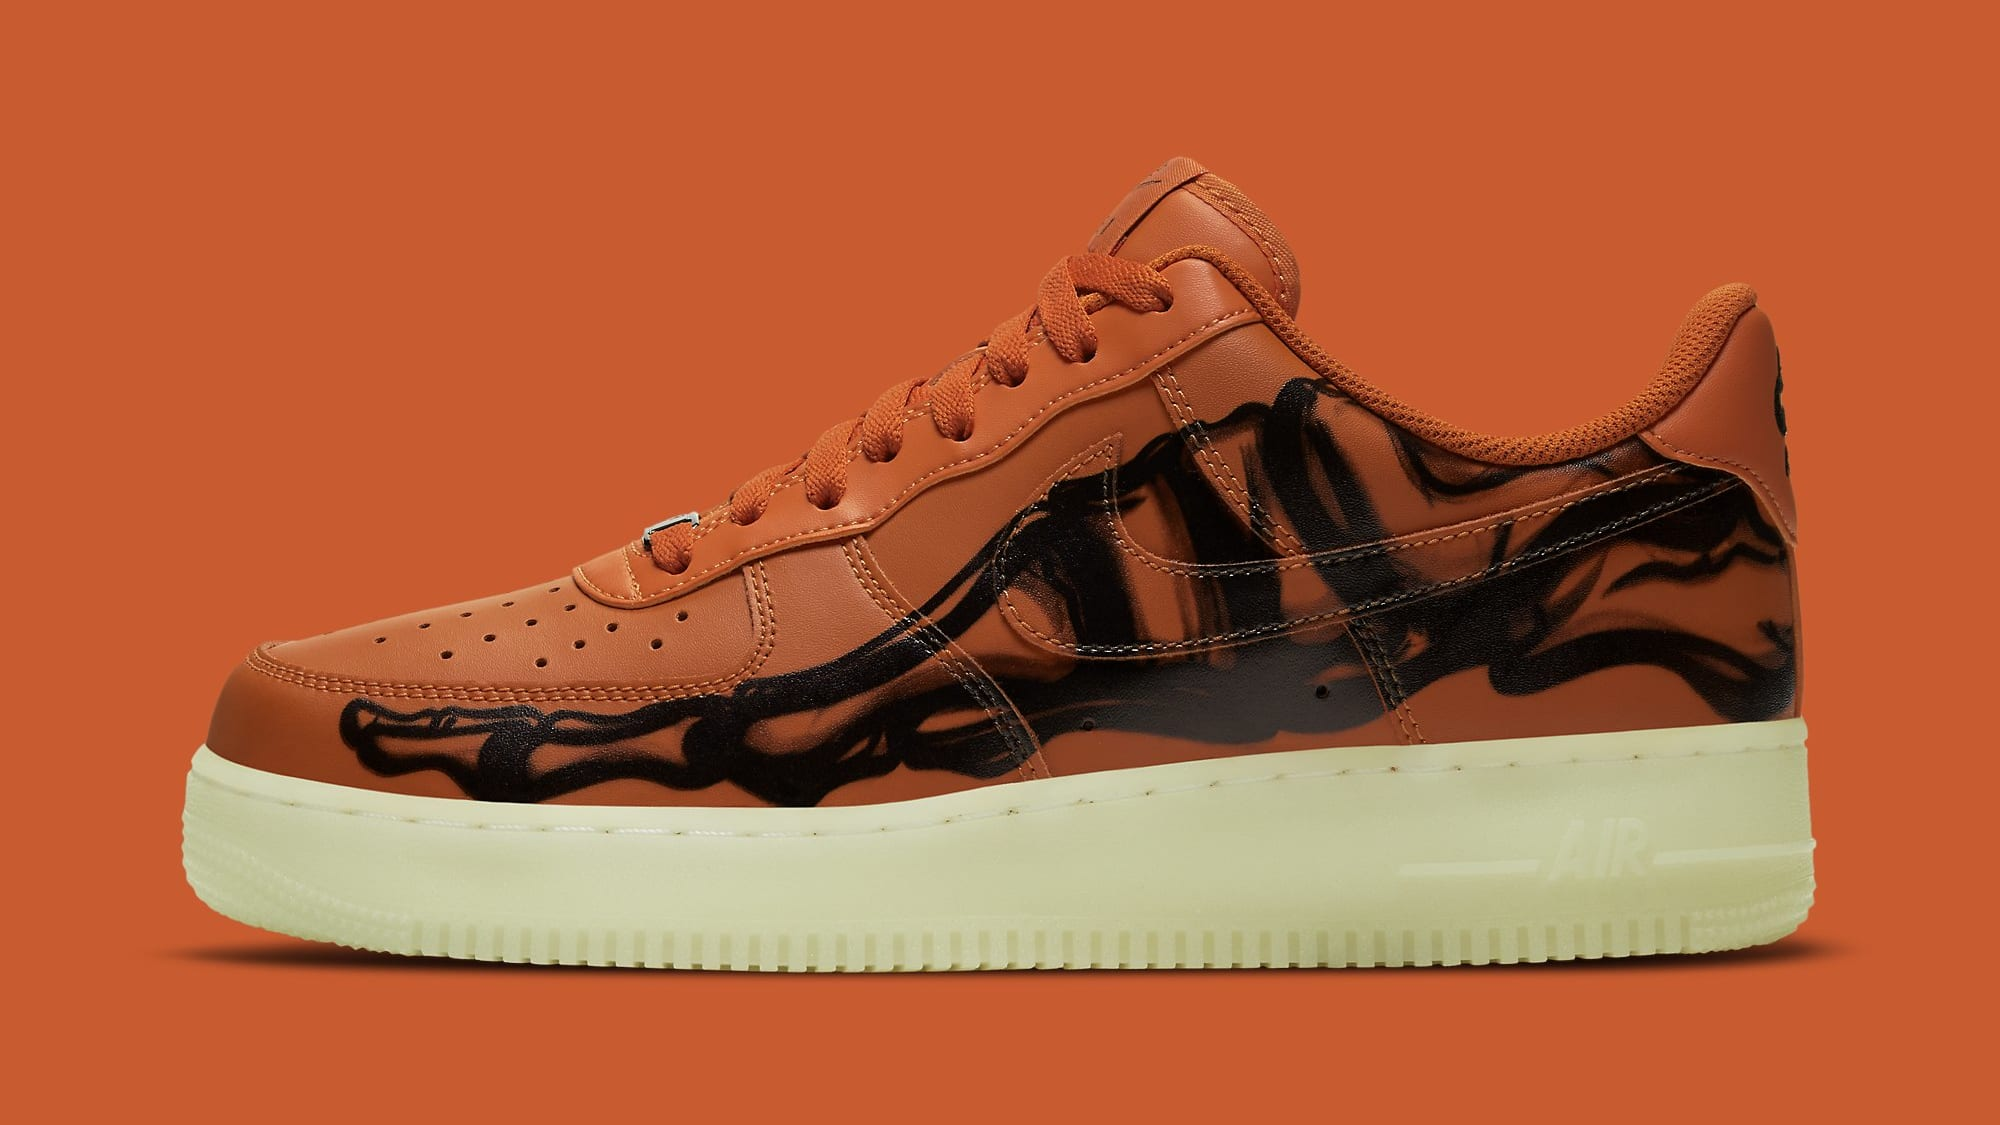 Nike Air Force 1 Low Skeleton 'Orange' CU8067-800 Lateral